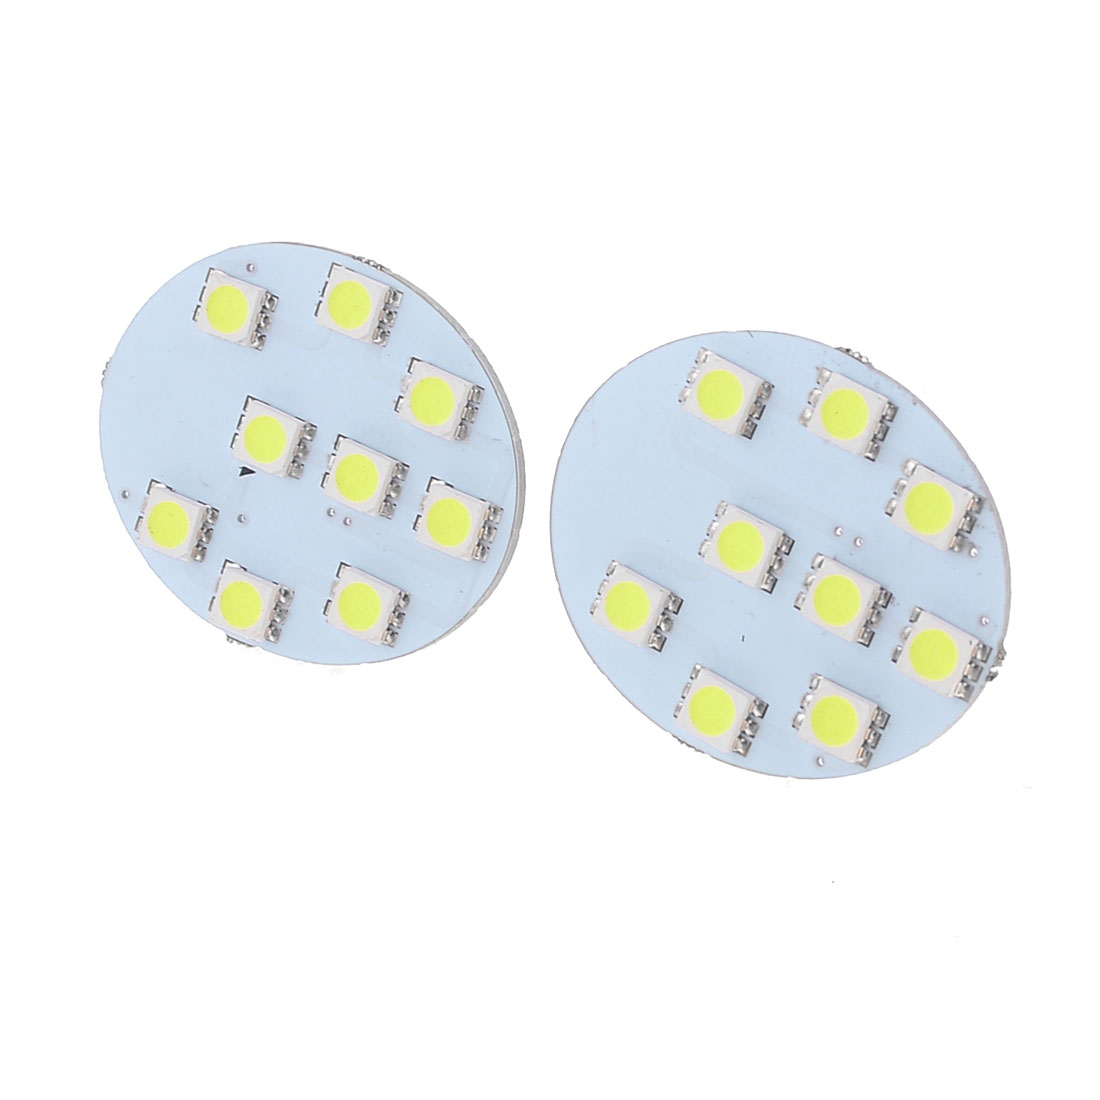 Pair White 5050 SMD Car Interior Rear Dome Reading Light for Camry